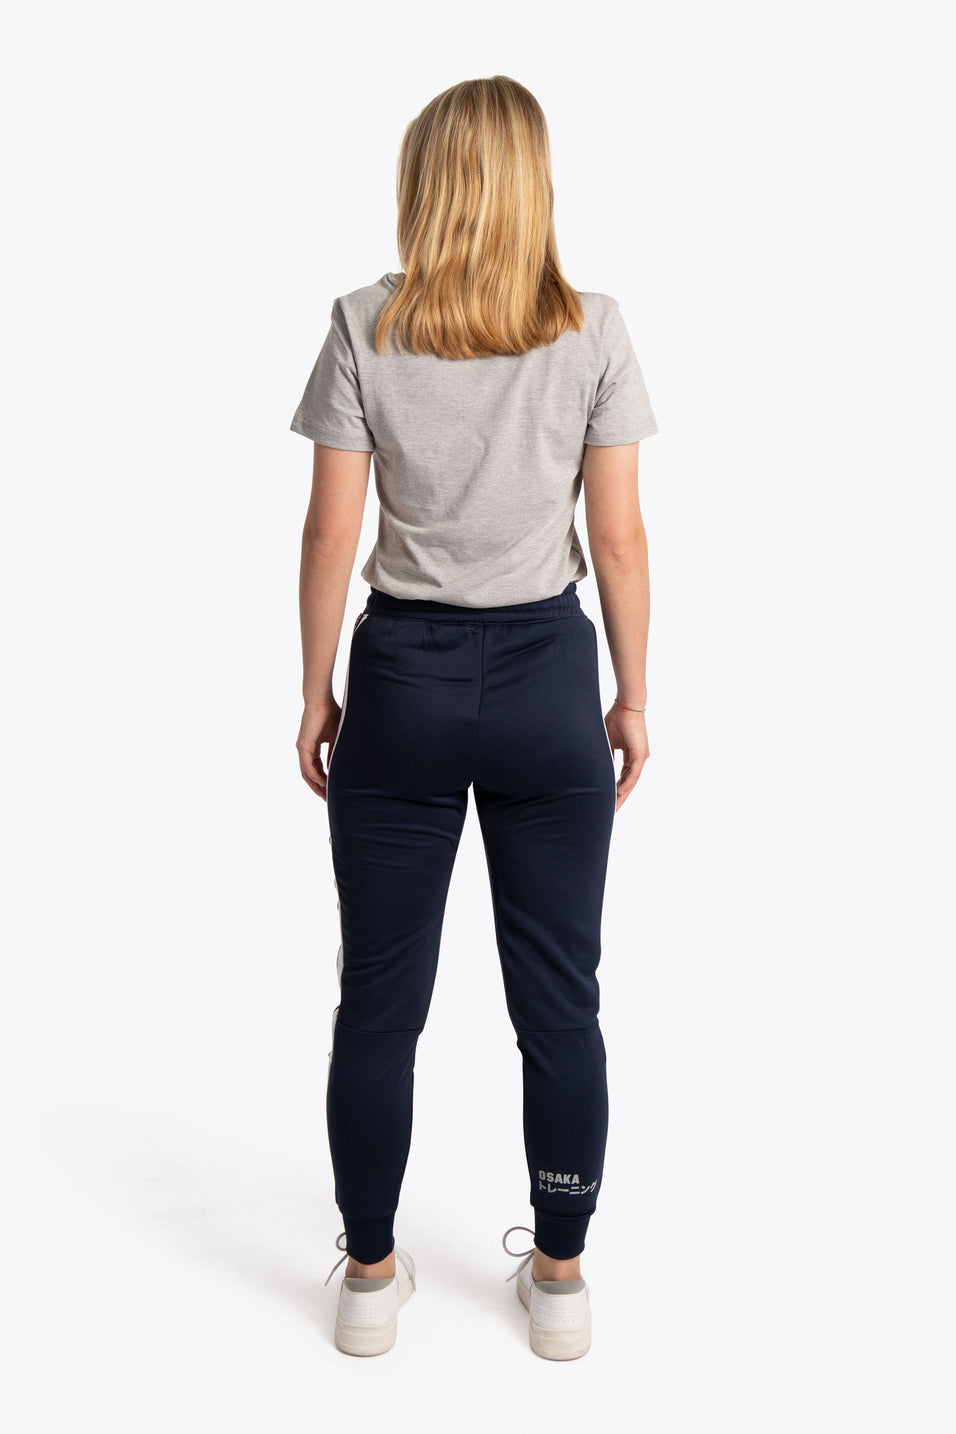 Women Training Sweatpants - Navy